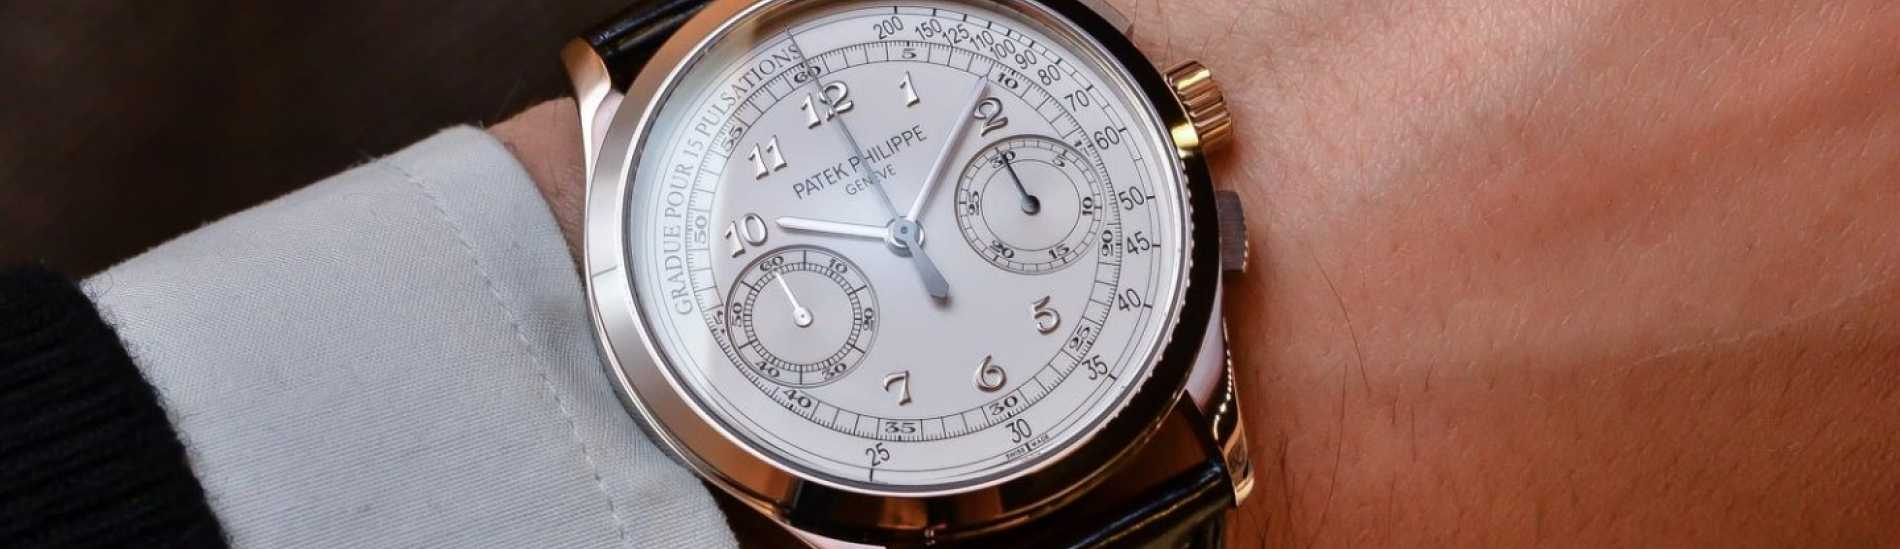 Standing the Test of Time - 7 of the World's Finest Watches